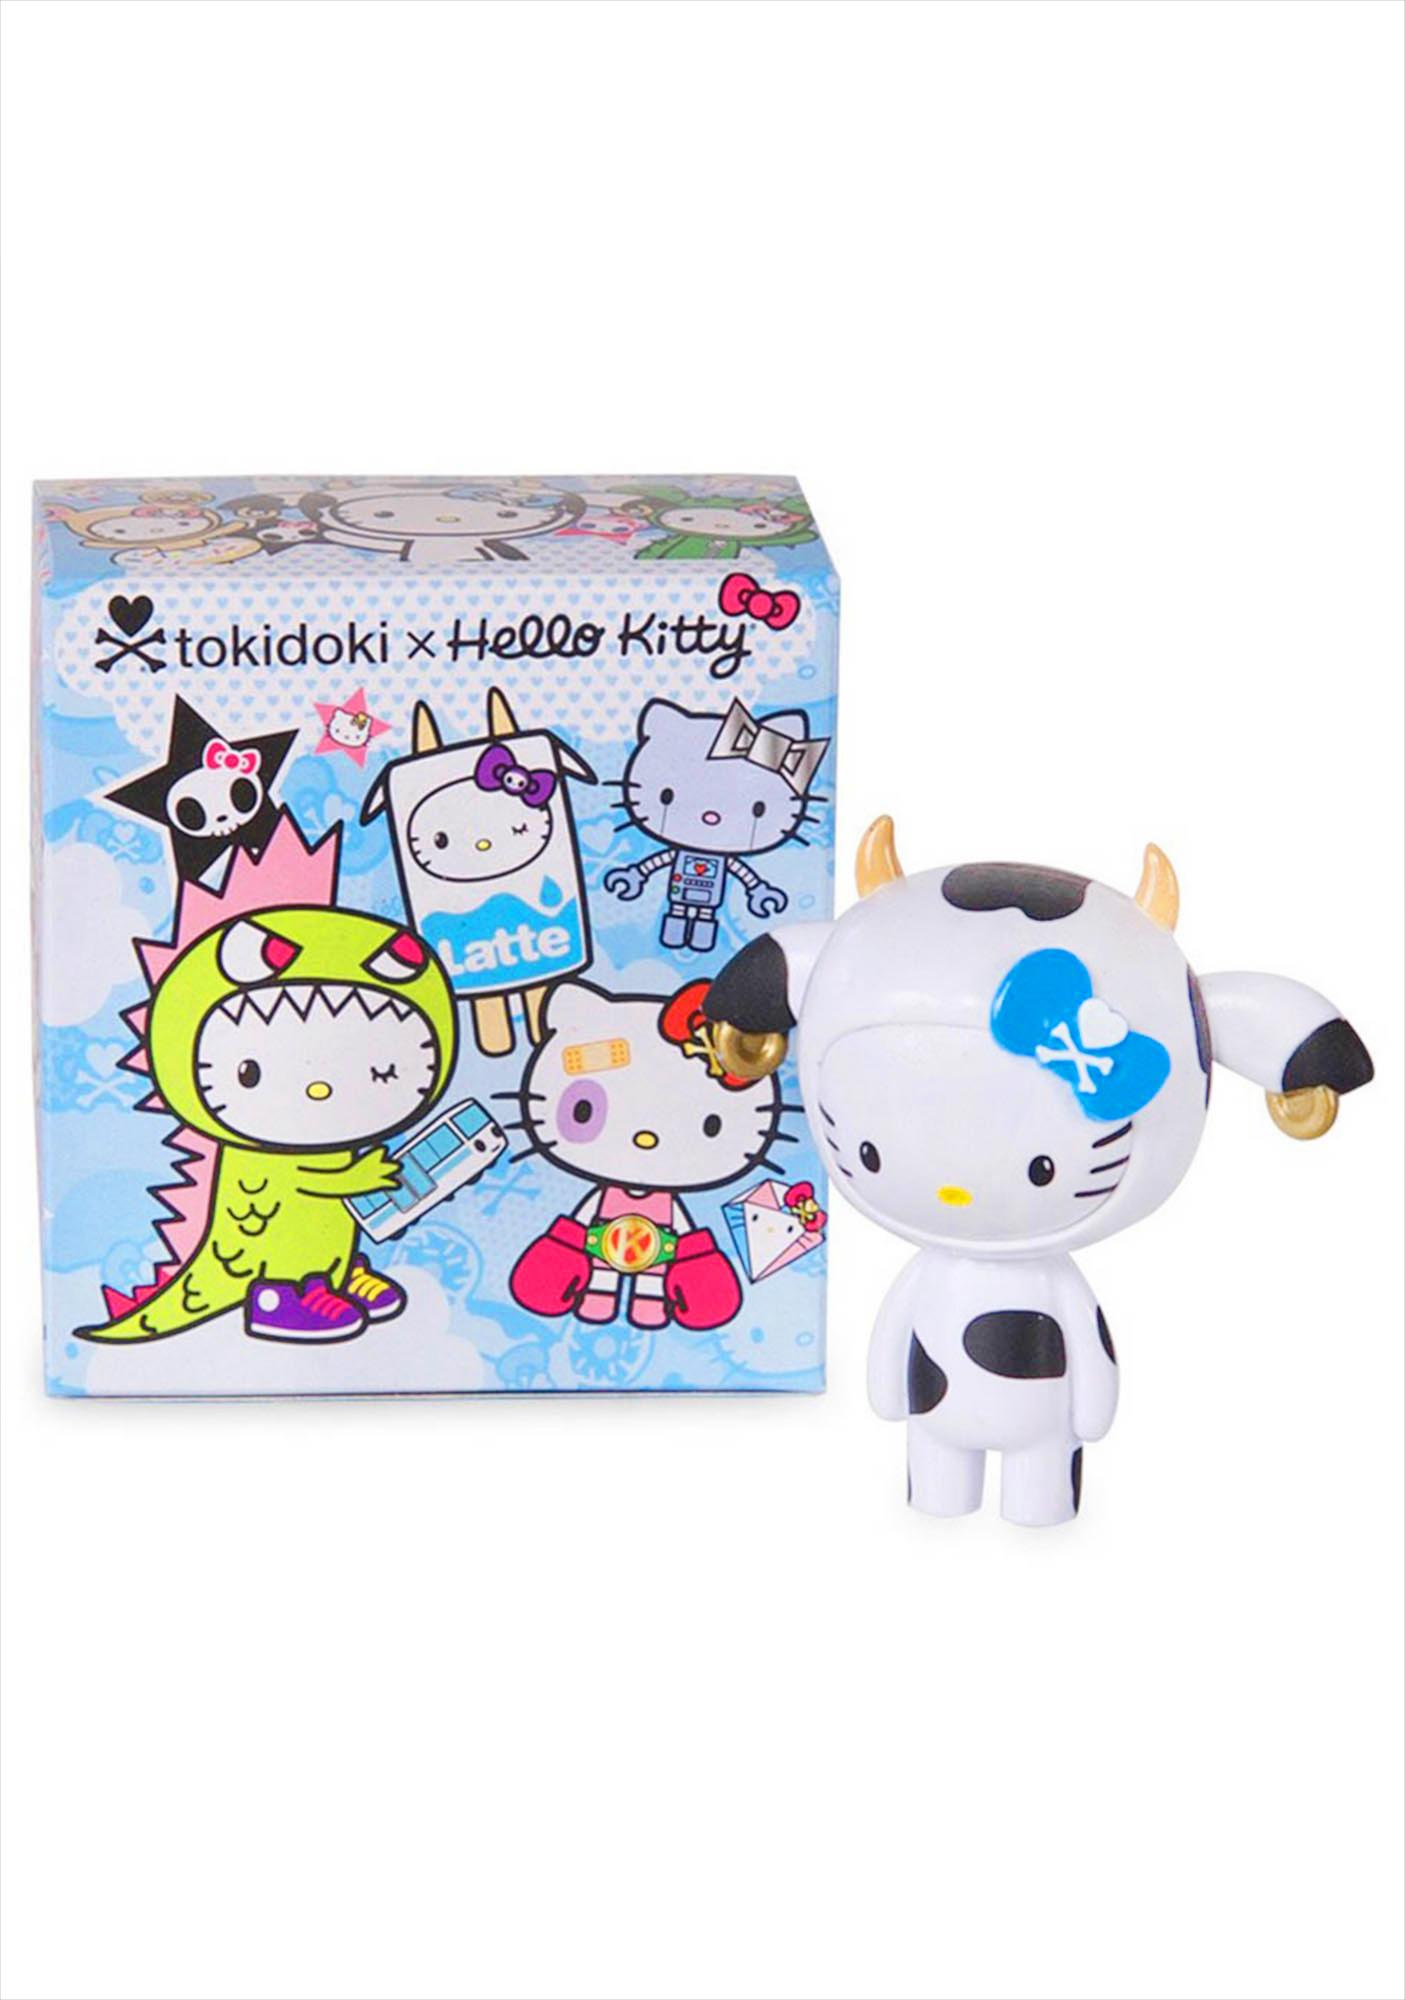 Tokidoki X Hello Kitty Blind Box